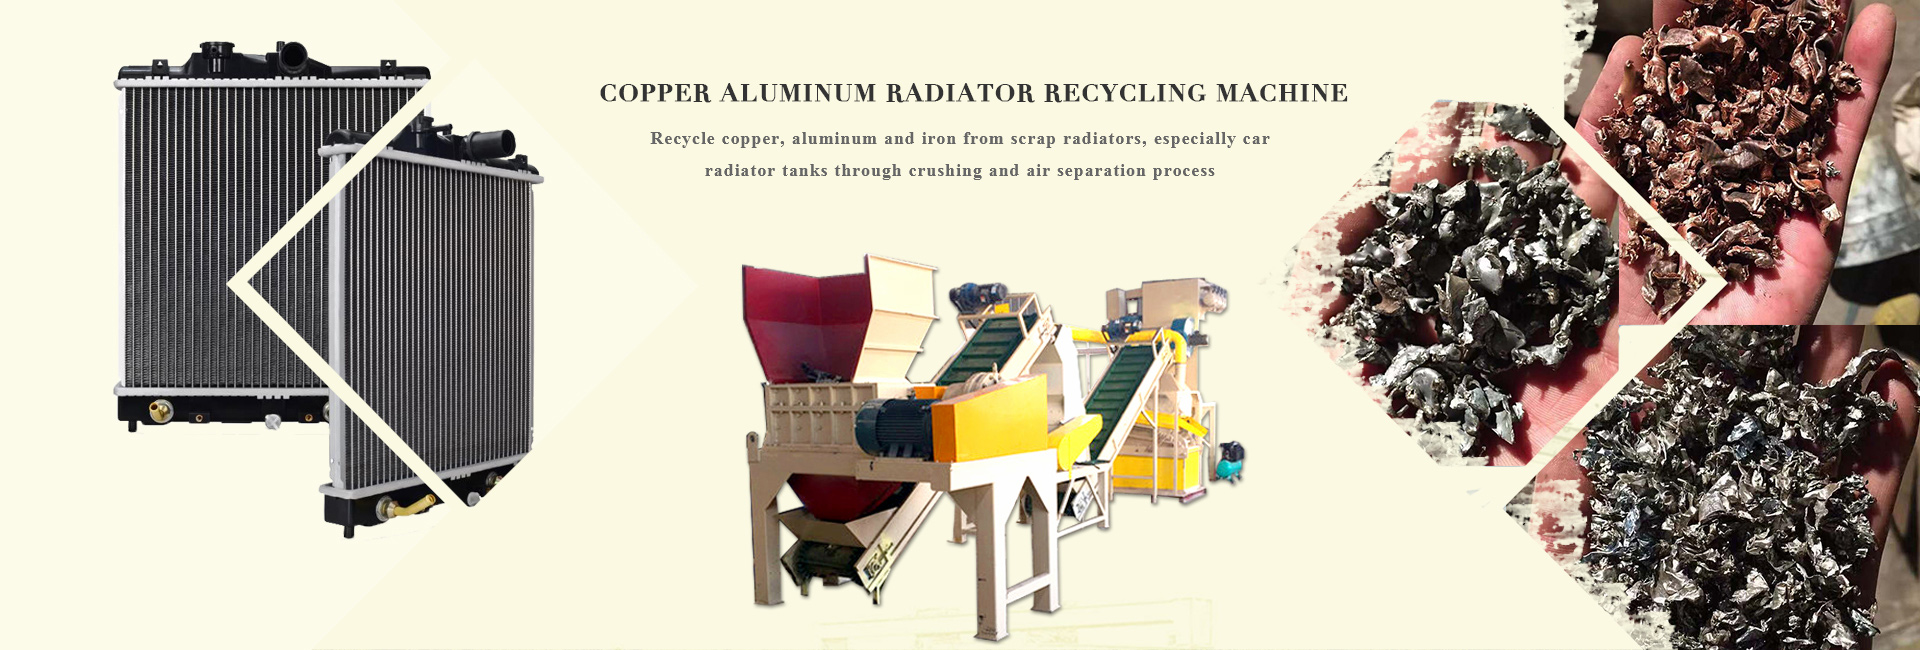 aluminum copper radiator recycling machine